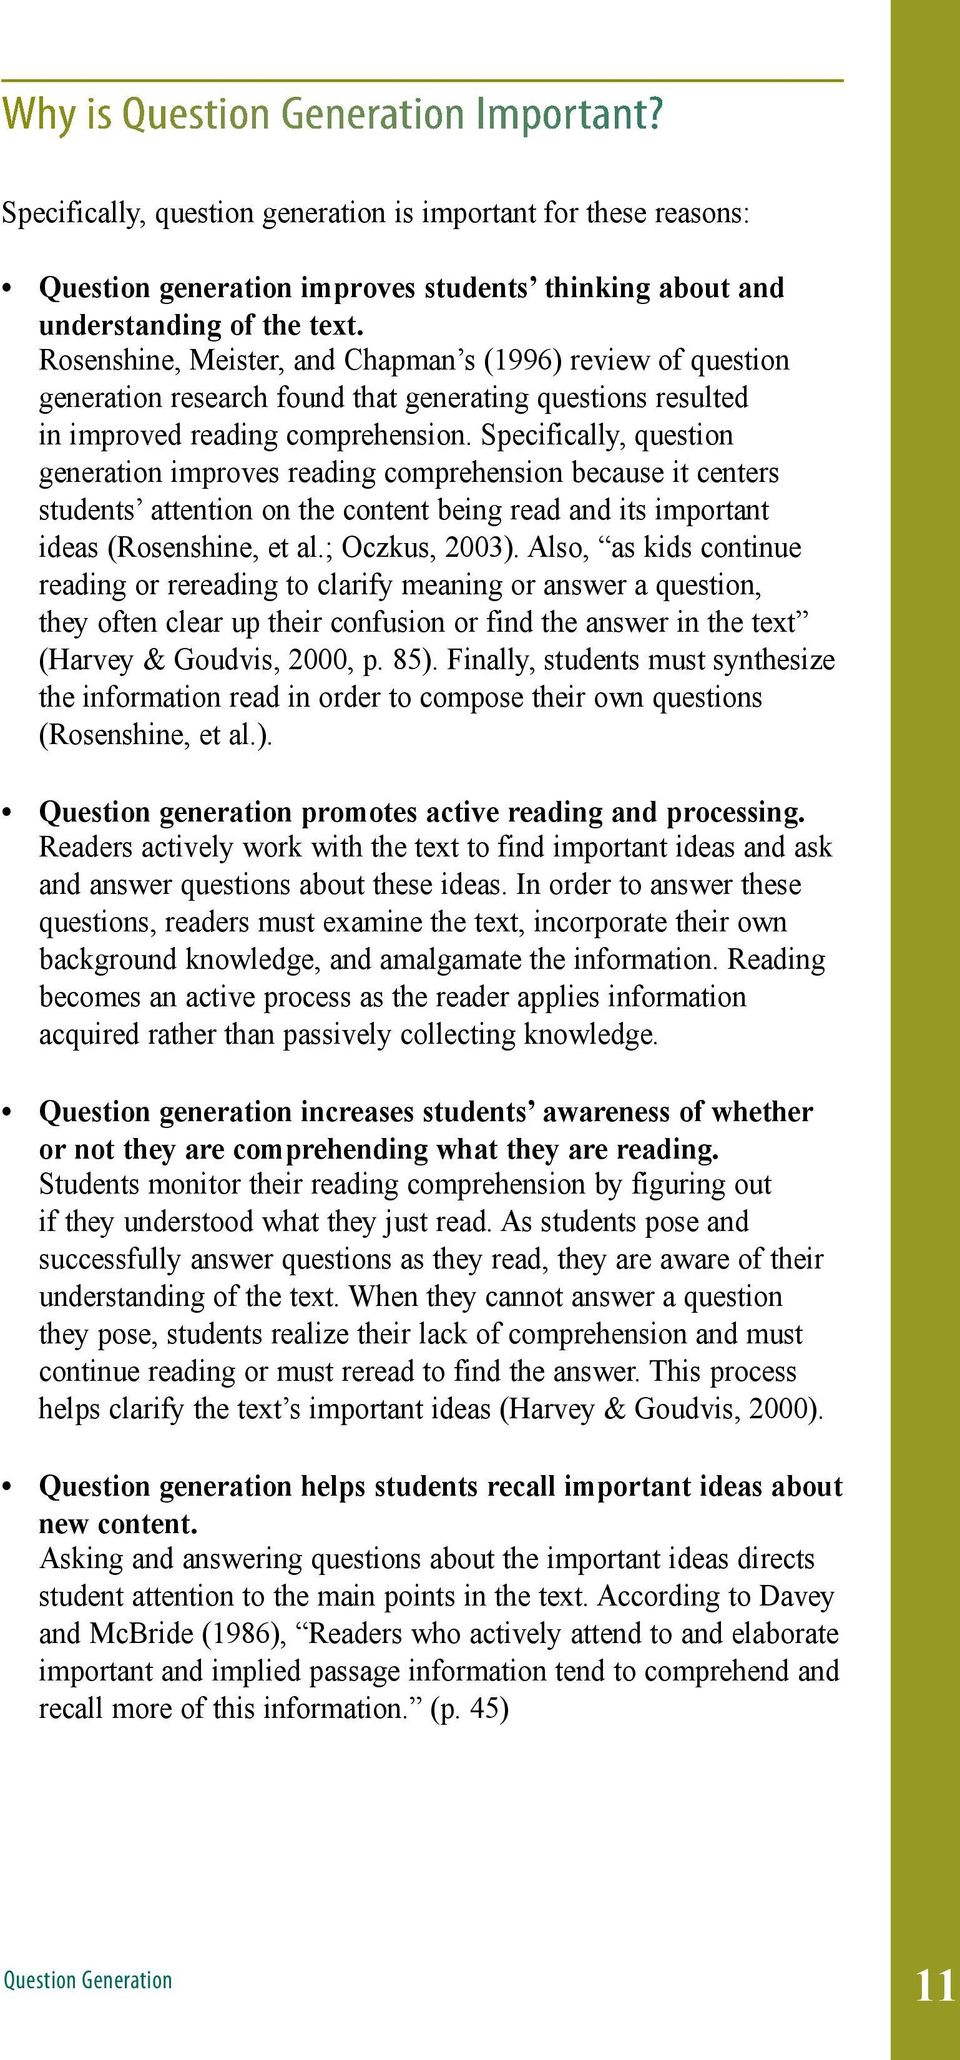 Specifically, question generation improves reading comprehension because it centers students attention on the content being read and its important ideas (Rosenshine, et al.; Oczkus, 2003).